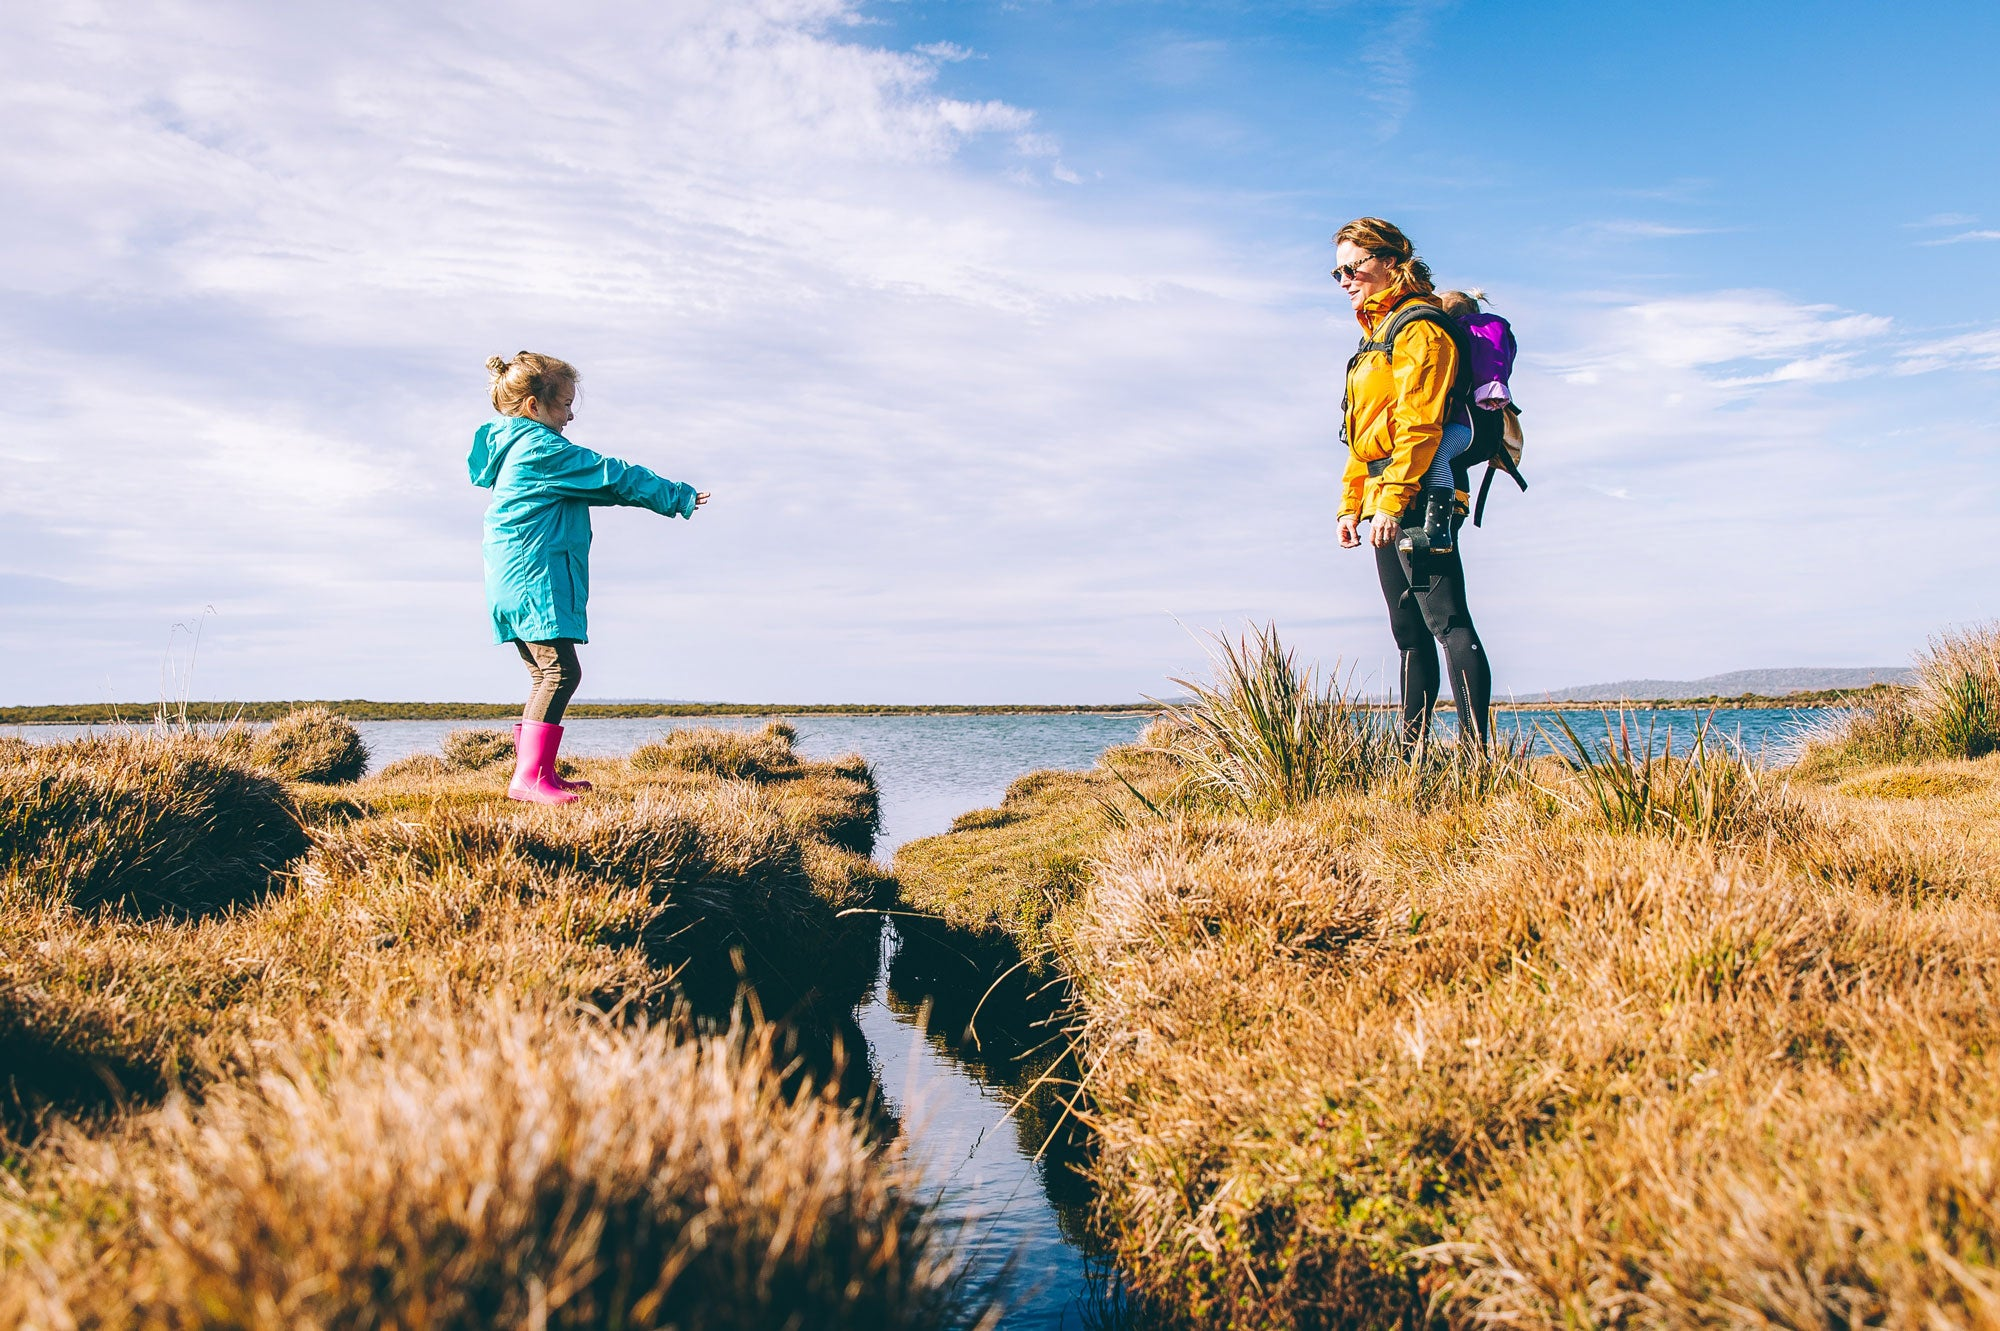 staheekum slippers mens womens kids tips for mom: how to hike with your kids